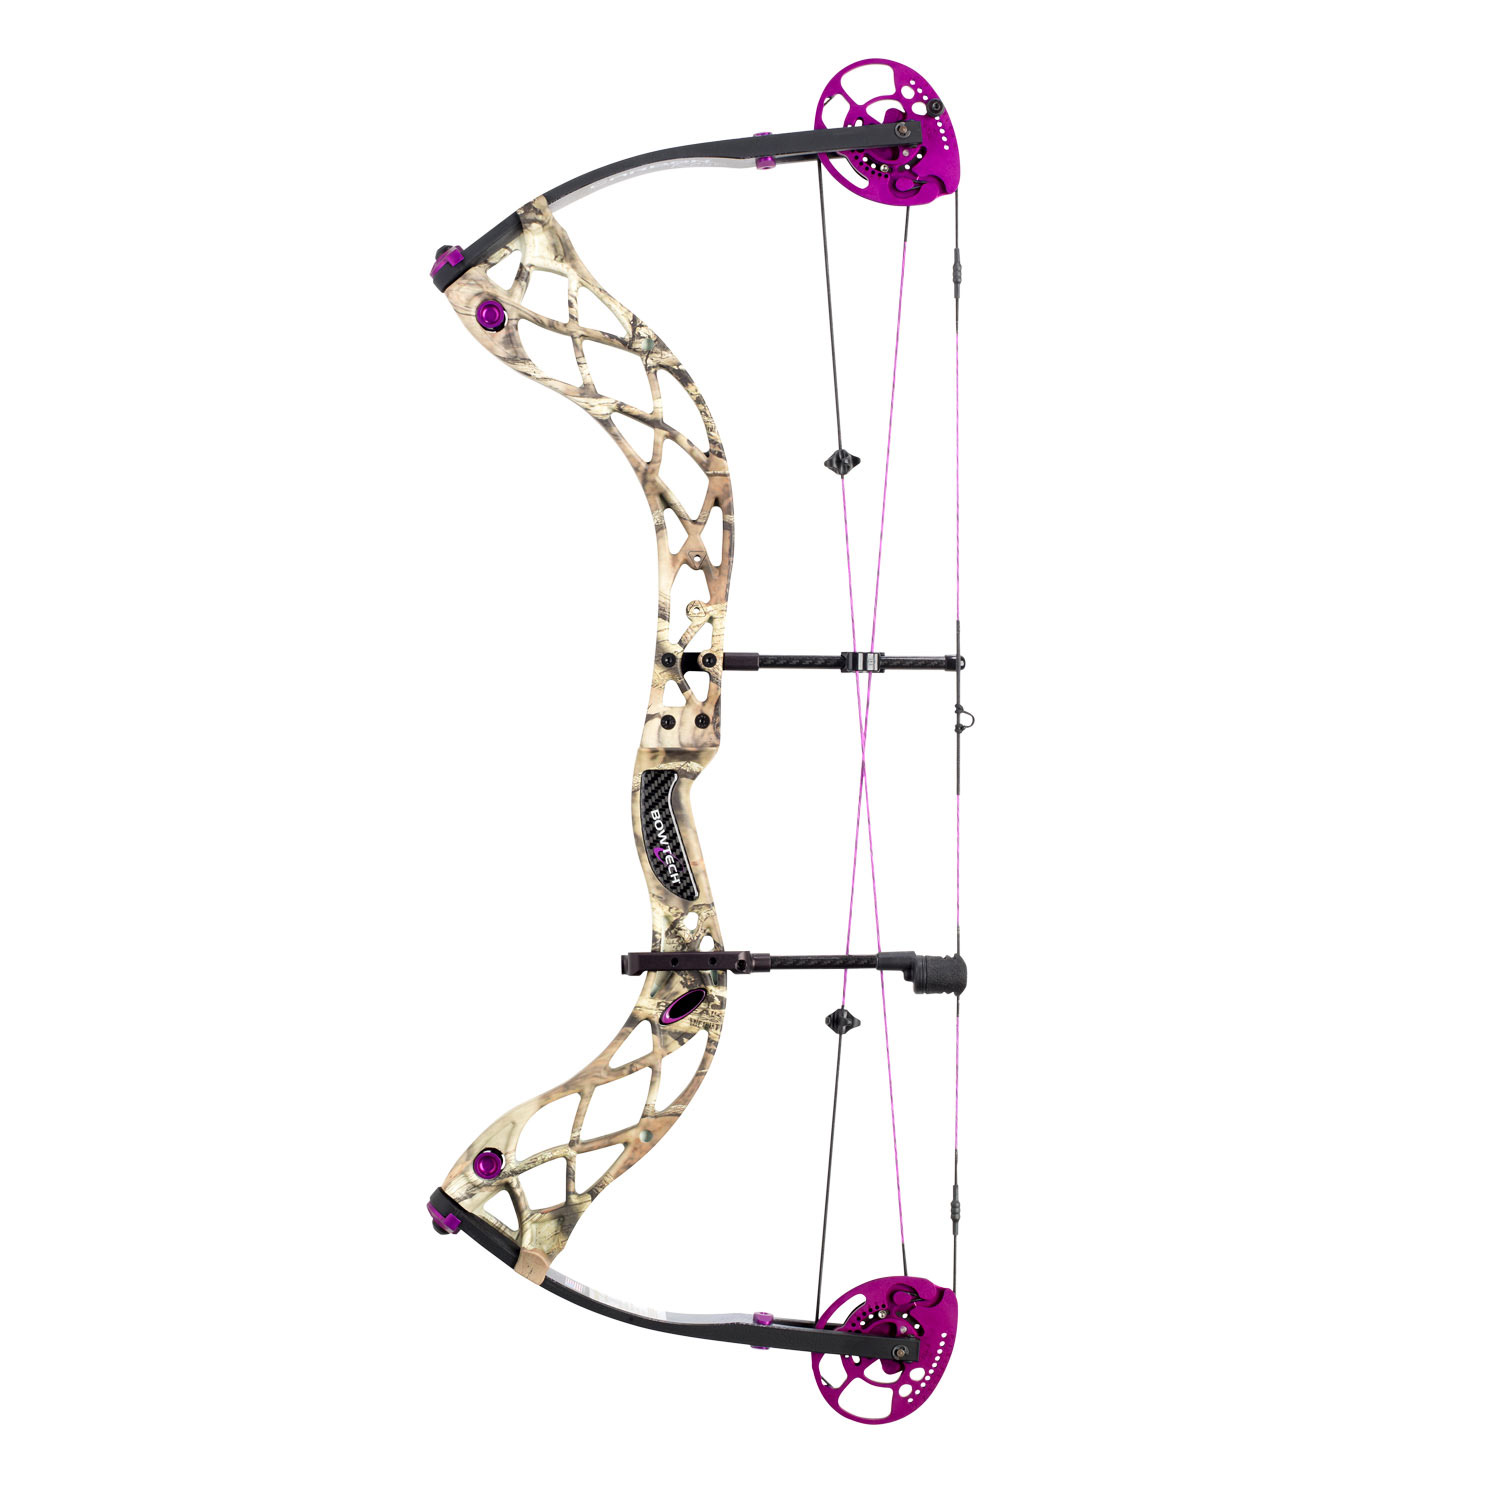 Bowtech Carbon Rose 碳玫瑰 裸弓 复合弓